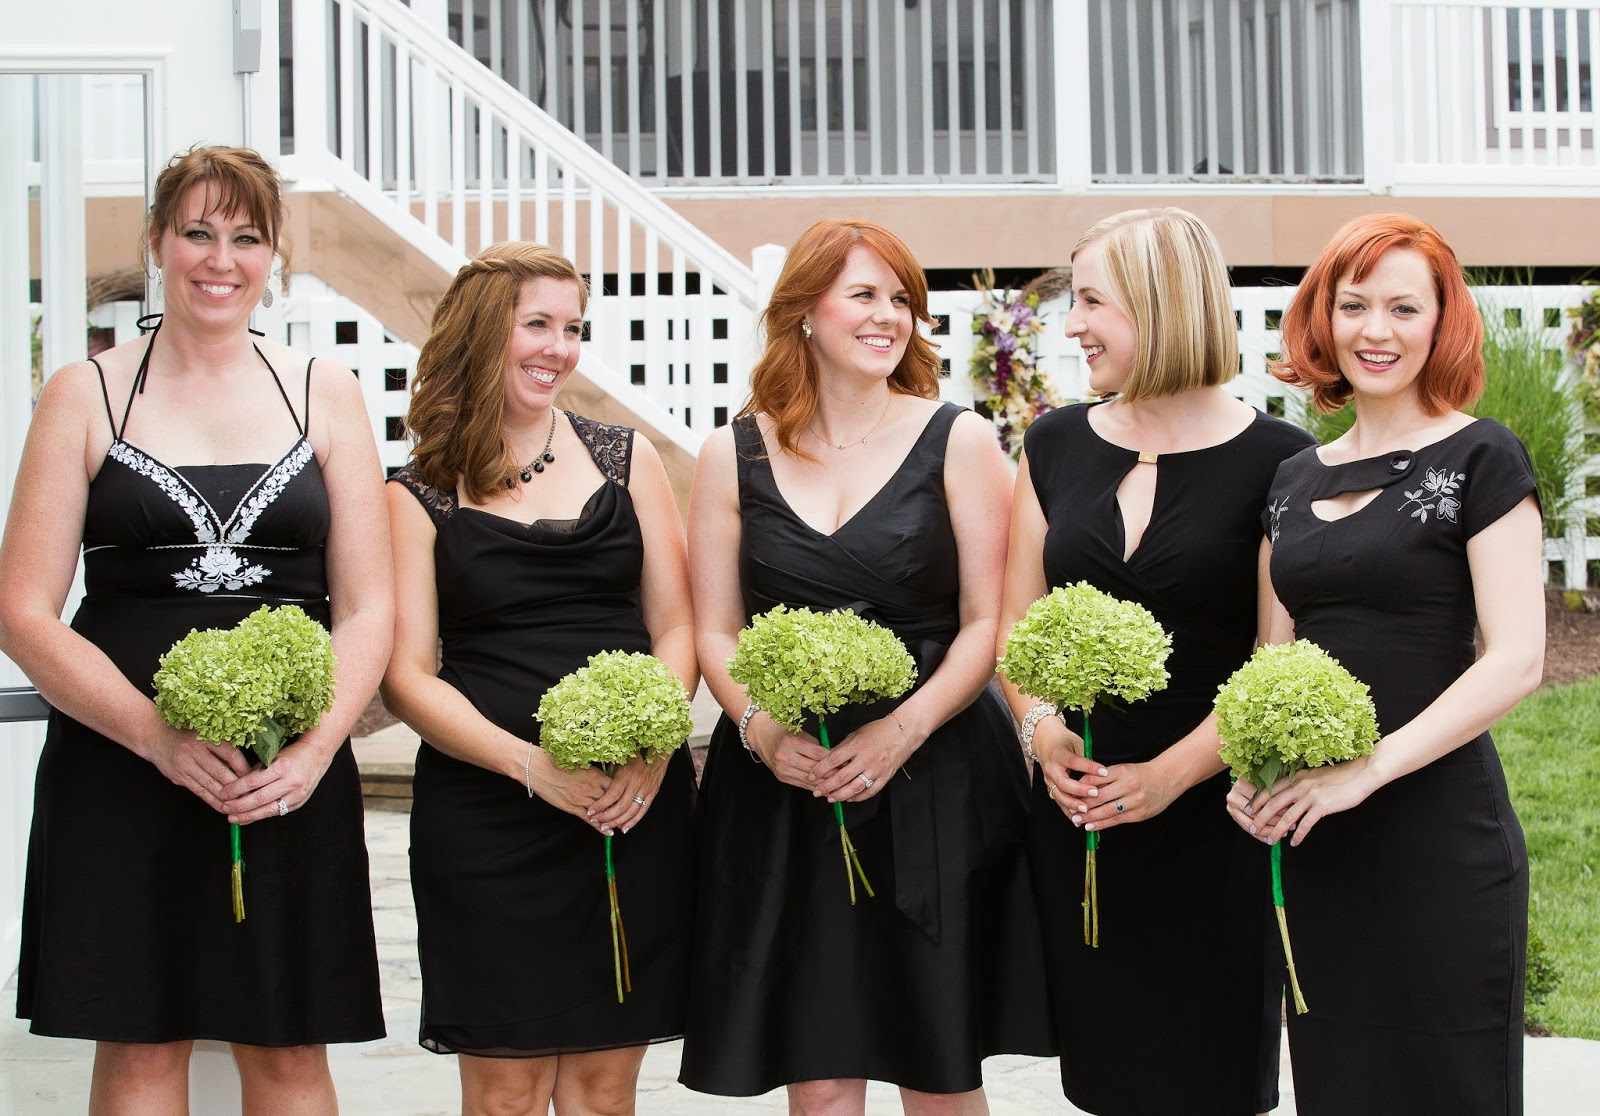 Where to buy used bridesmaid dresses vosoi aubrey urbanowicz behind the scenes the wedding ombrellifo Image collections